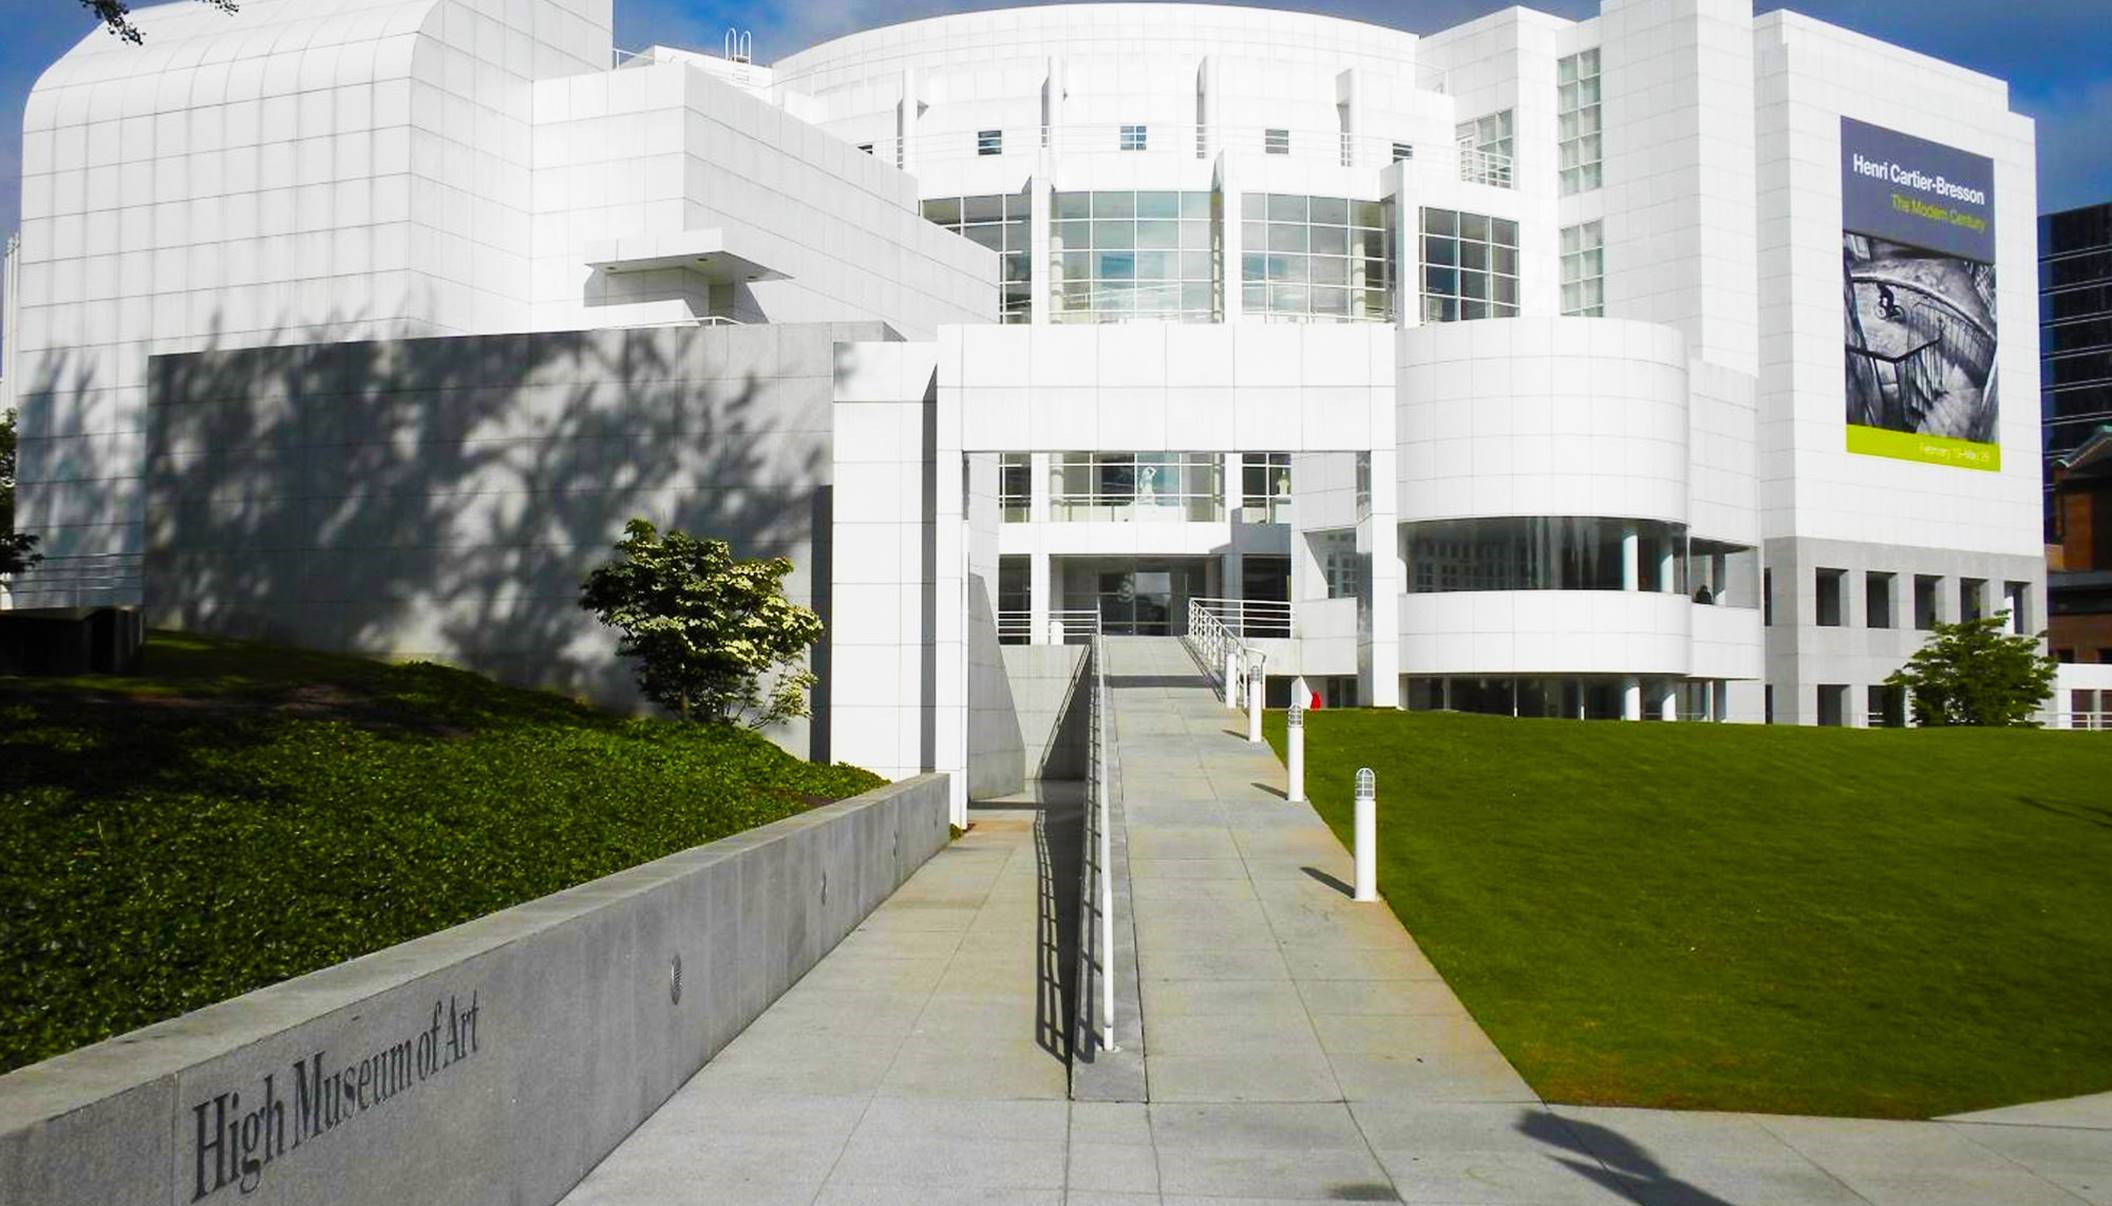 Historic Jewish Atlanta Tours - The High Museum